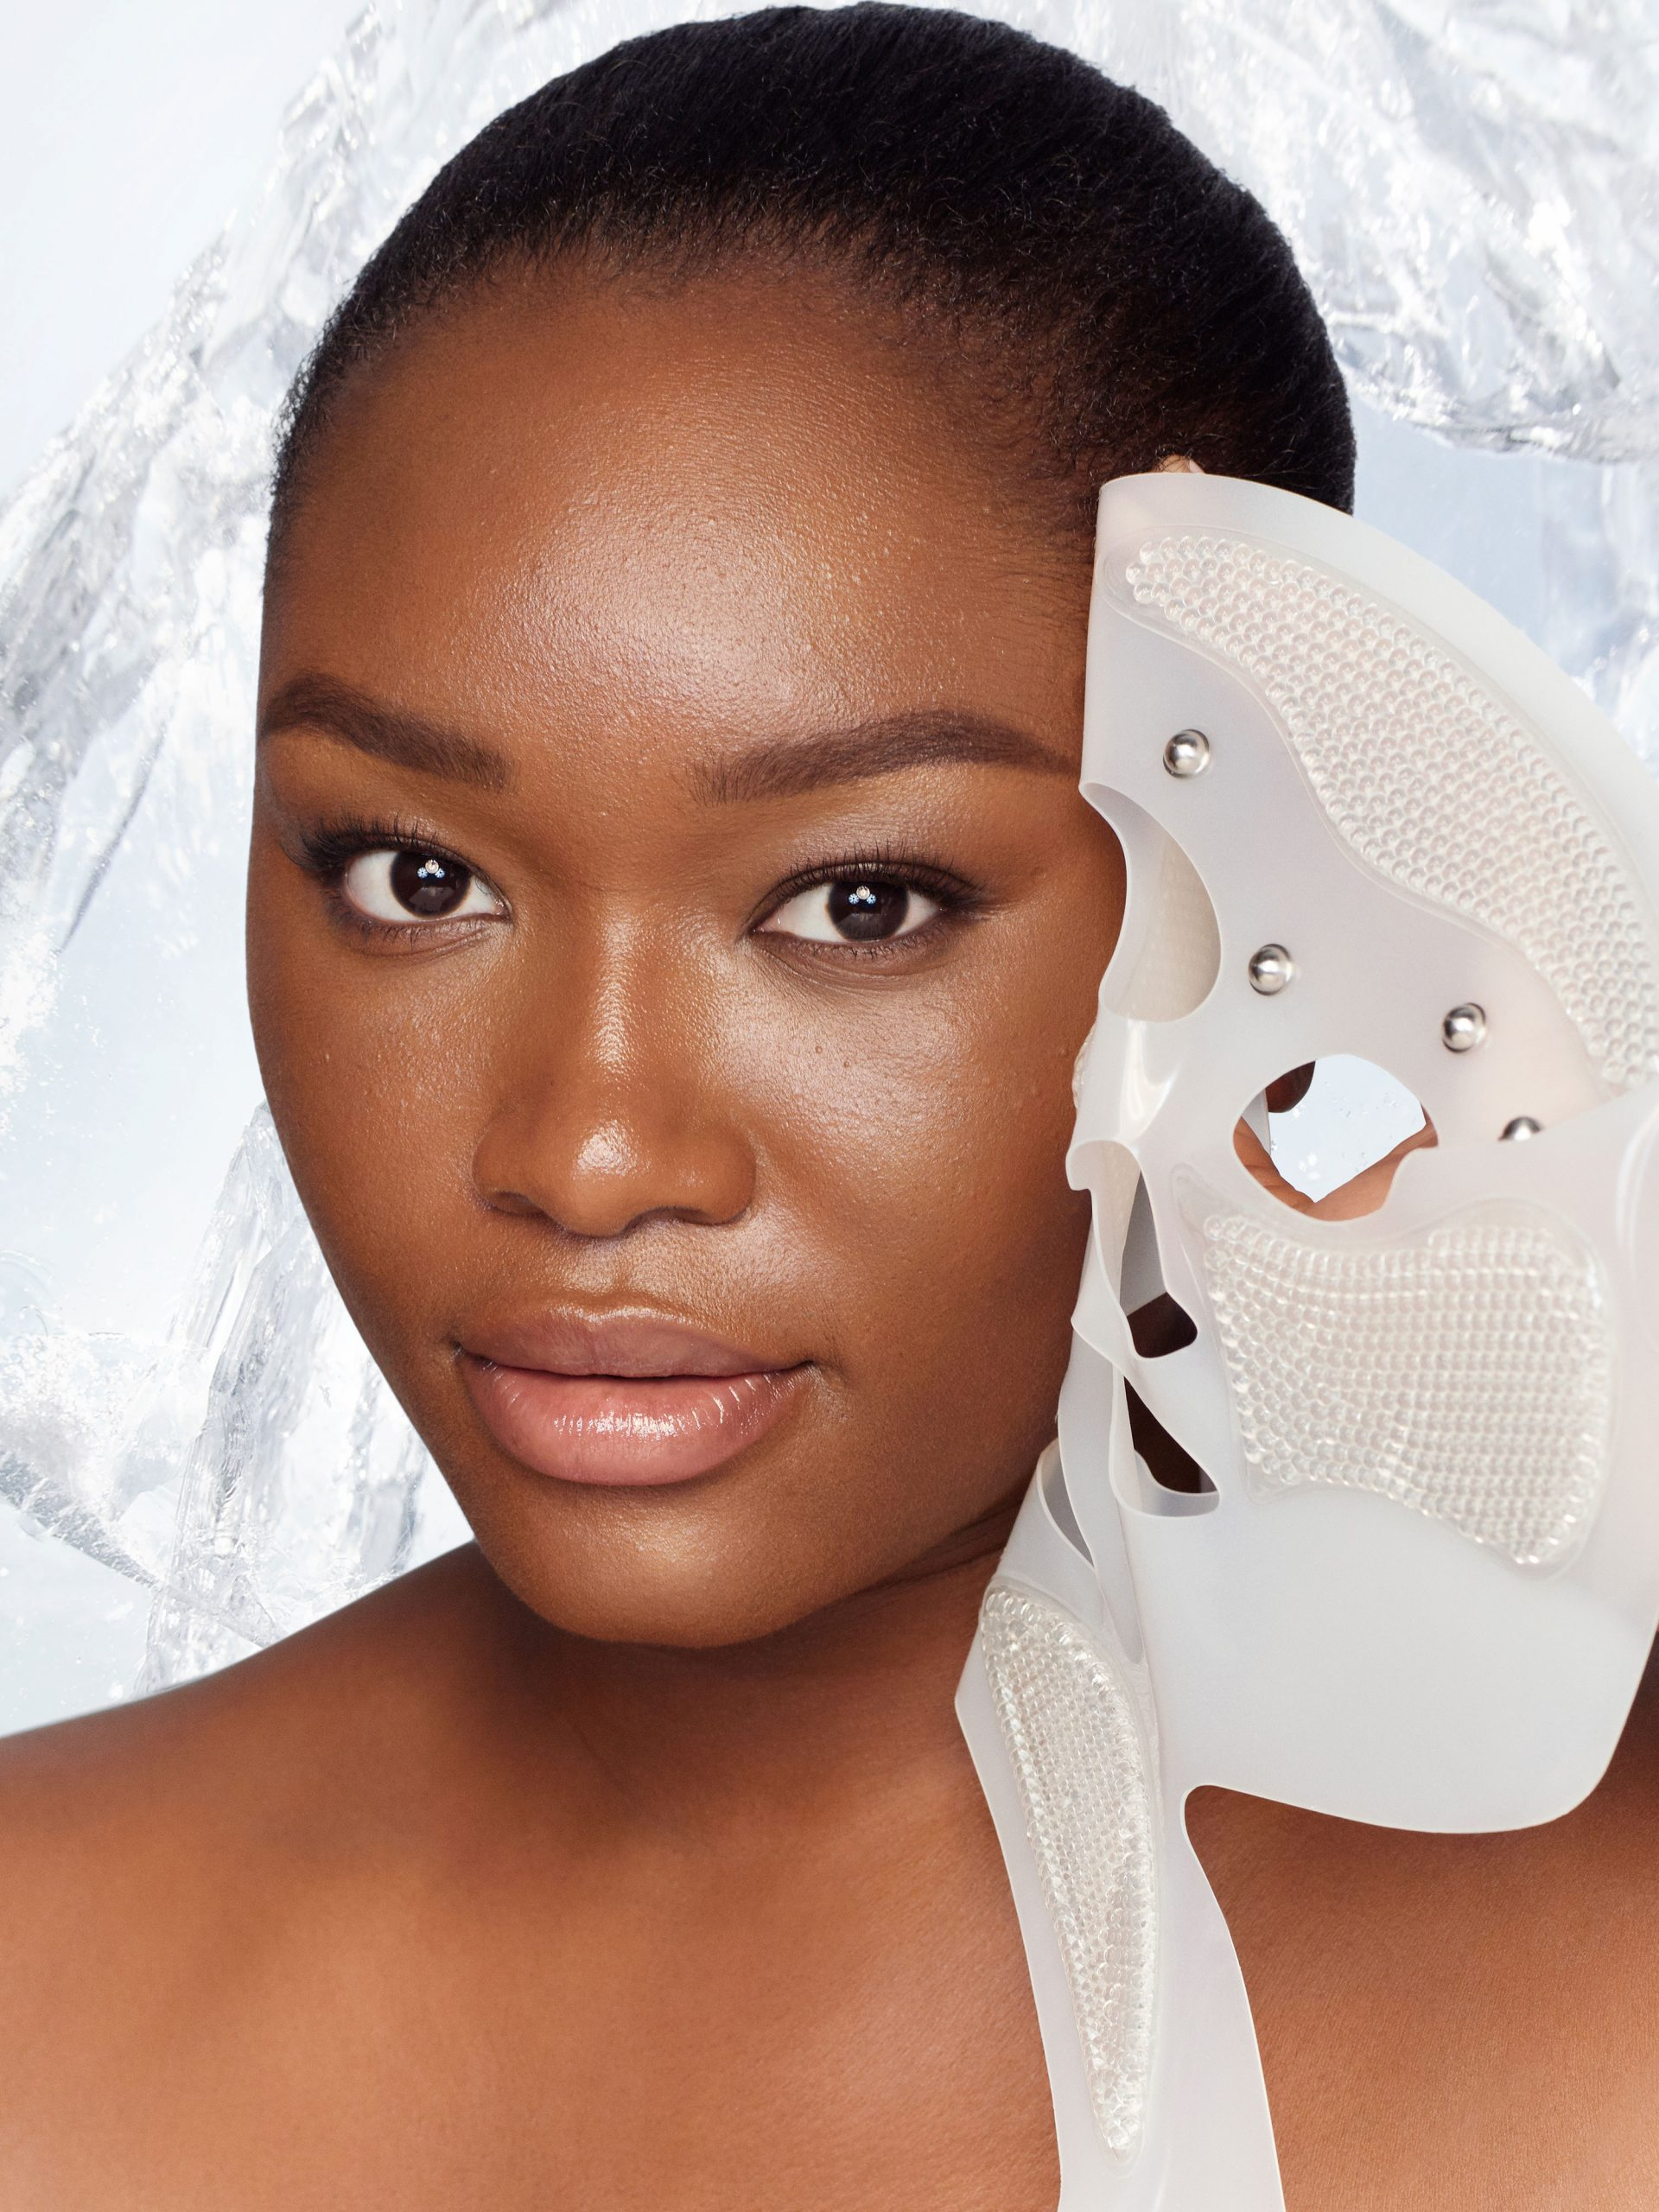 Charlotte Tilbury Cryotherapy-Inspired Skincare + More Beauty News